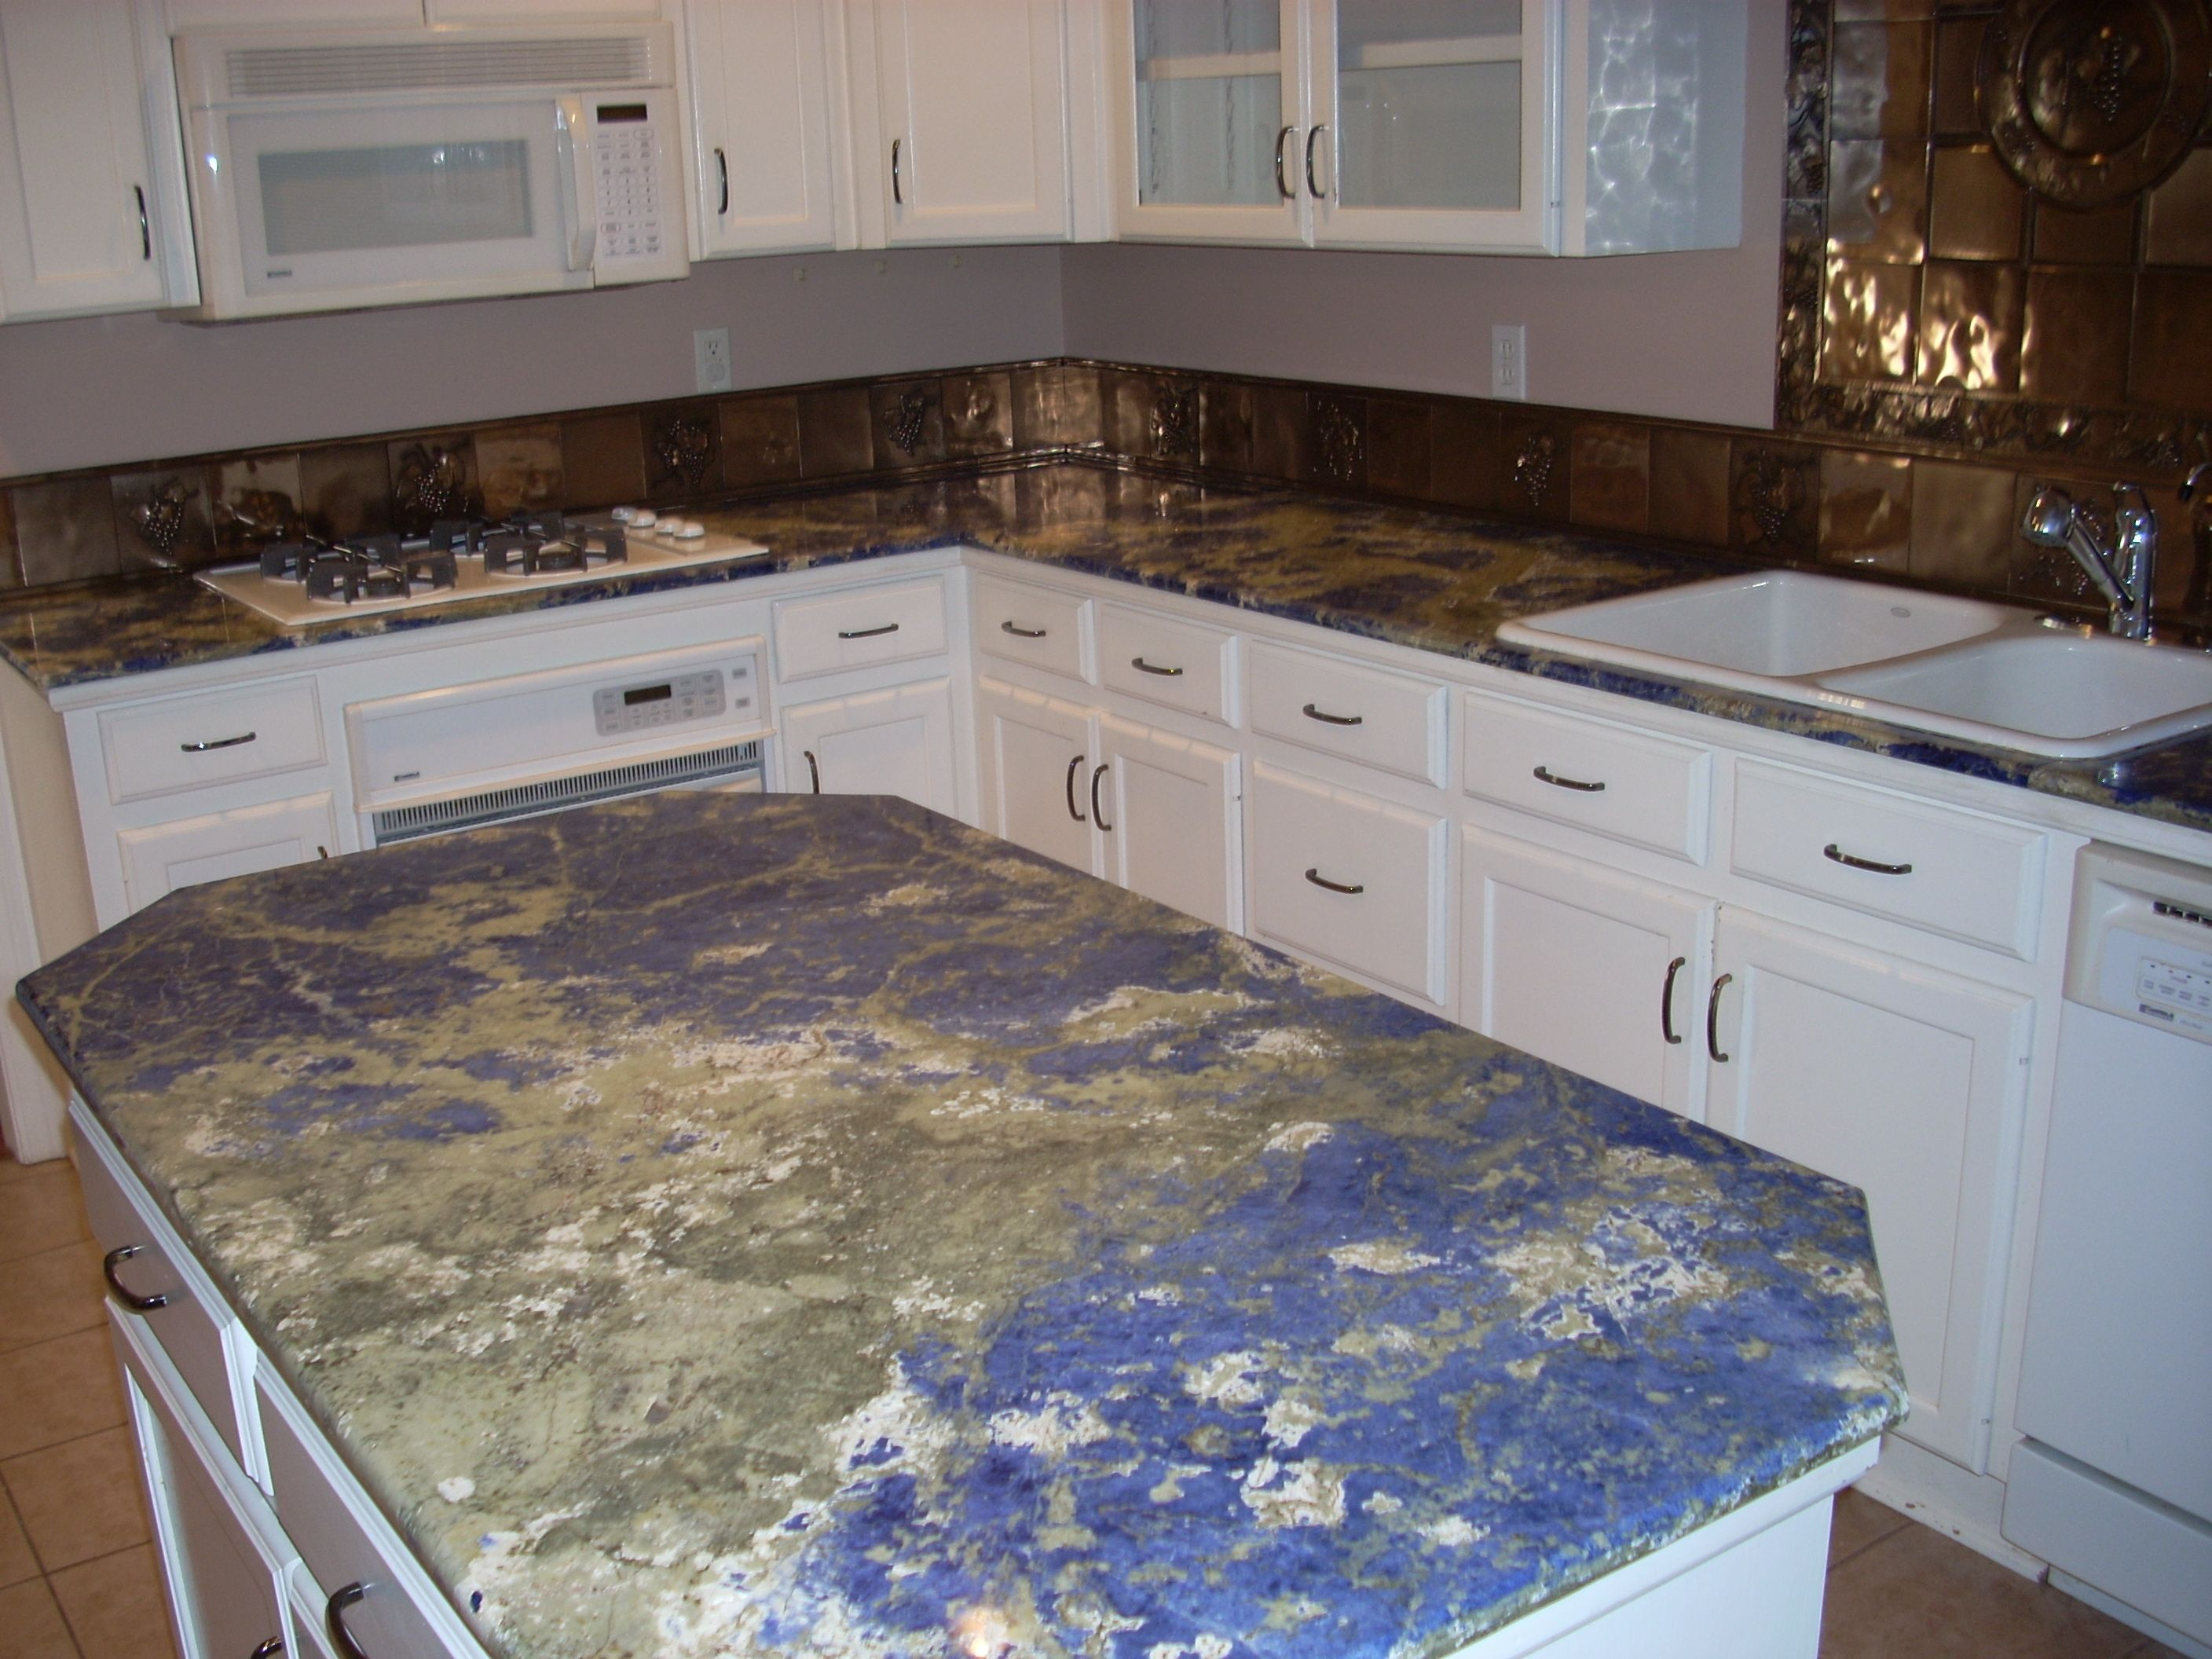 Sodalite blue granite countertops amazing texture for Navy blue granite countertops